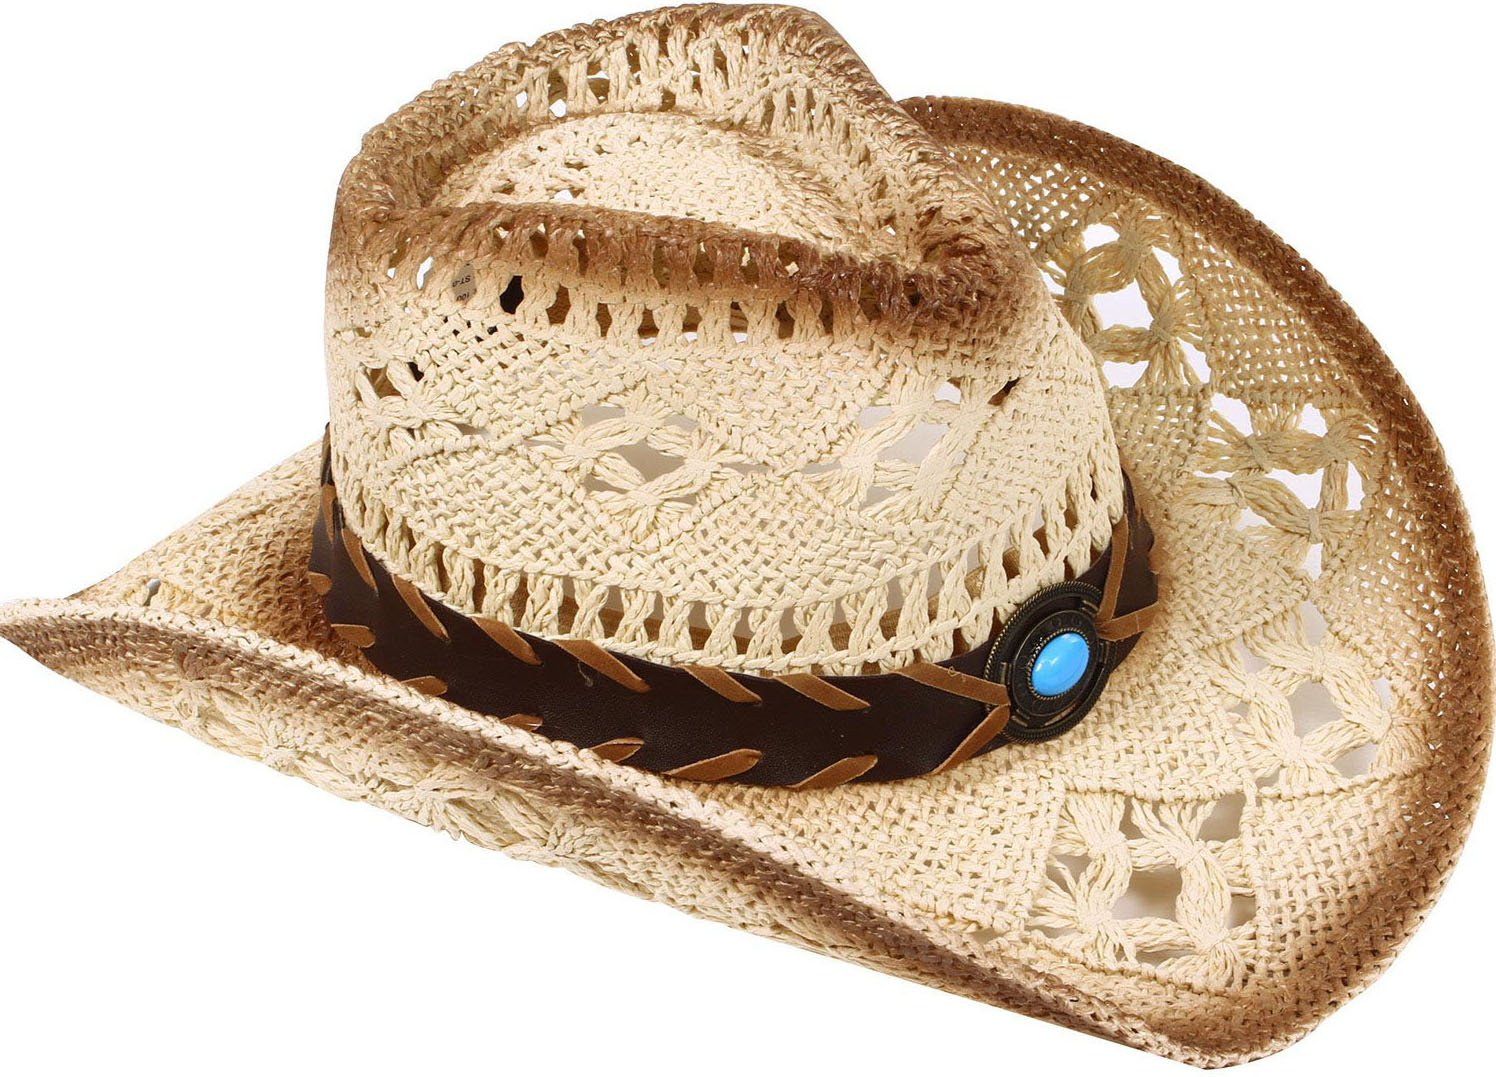 Livingston Men & Women's Woven Straw Cowboy Hat w/Hat Band Décor, Bead Beige